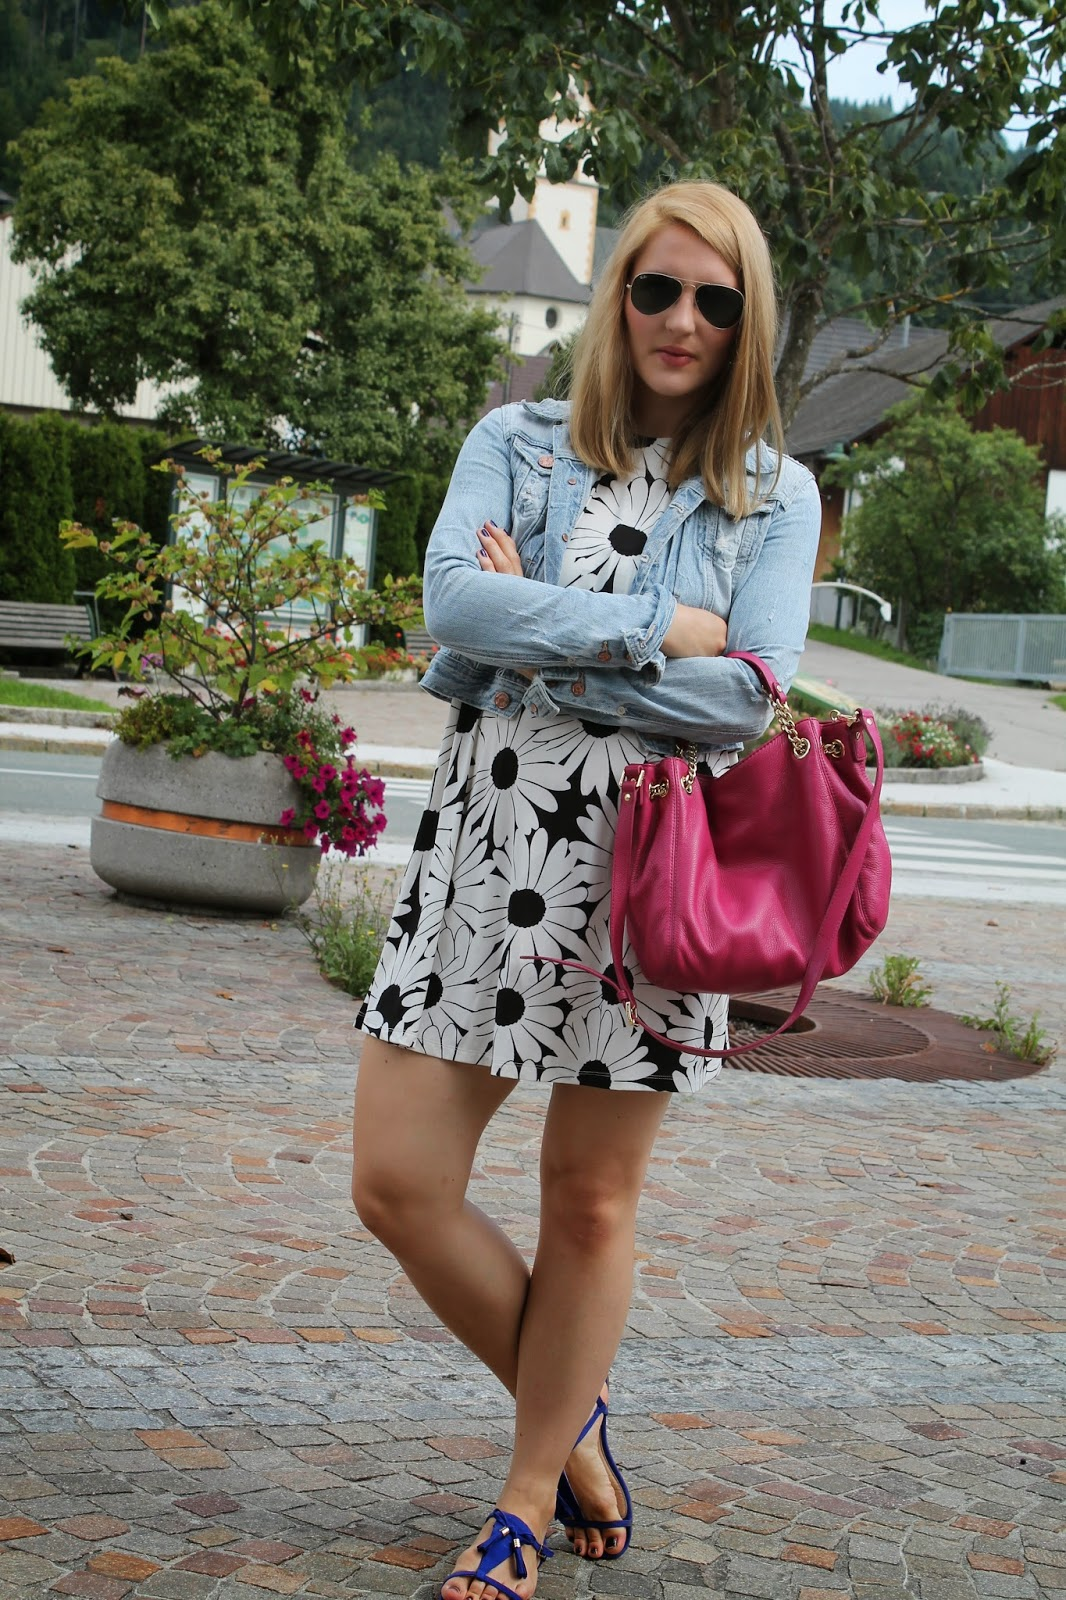 Fashionblogger Austria / Österreich / Deutsch / German / Kärnten / Carinthia / Klagenfurt / Köttmannsdorf / Spring Look / Classy / Edgy / Summer / Summer Style 2014 / Summer Look / Fashionista Look /   / Black white Look/ Dress / Michael Kors Bag / Pink Bag / Milanoo / Jeans Jacket / Streetstyle / Streetstyle Summer Look / Sandals / H&M / Ray Ban Aviator /